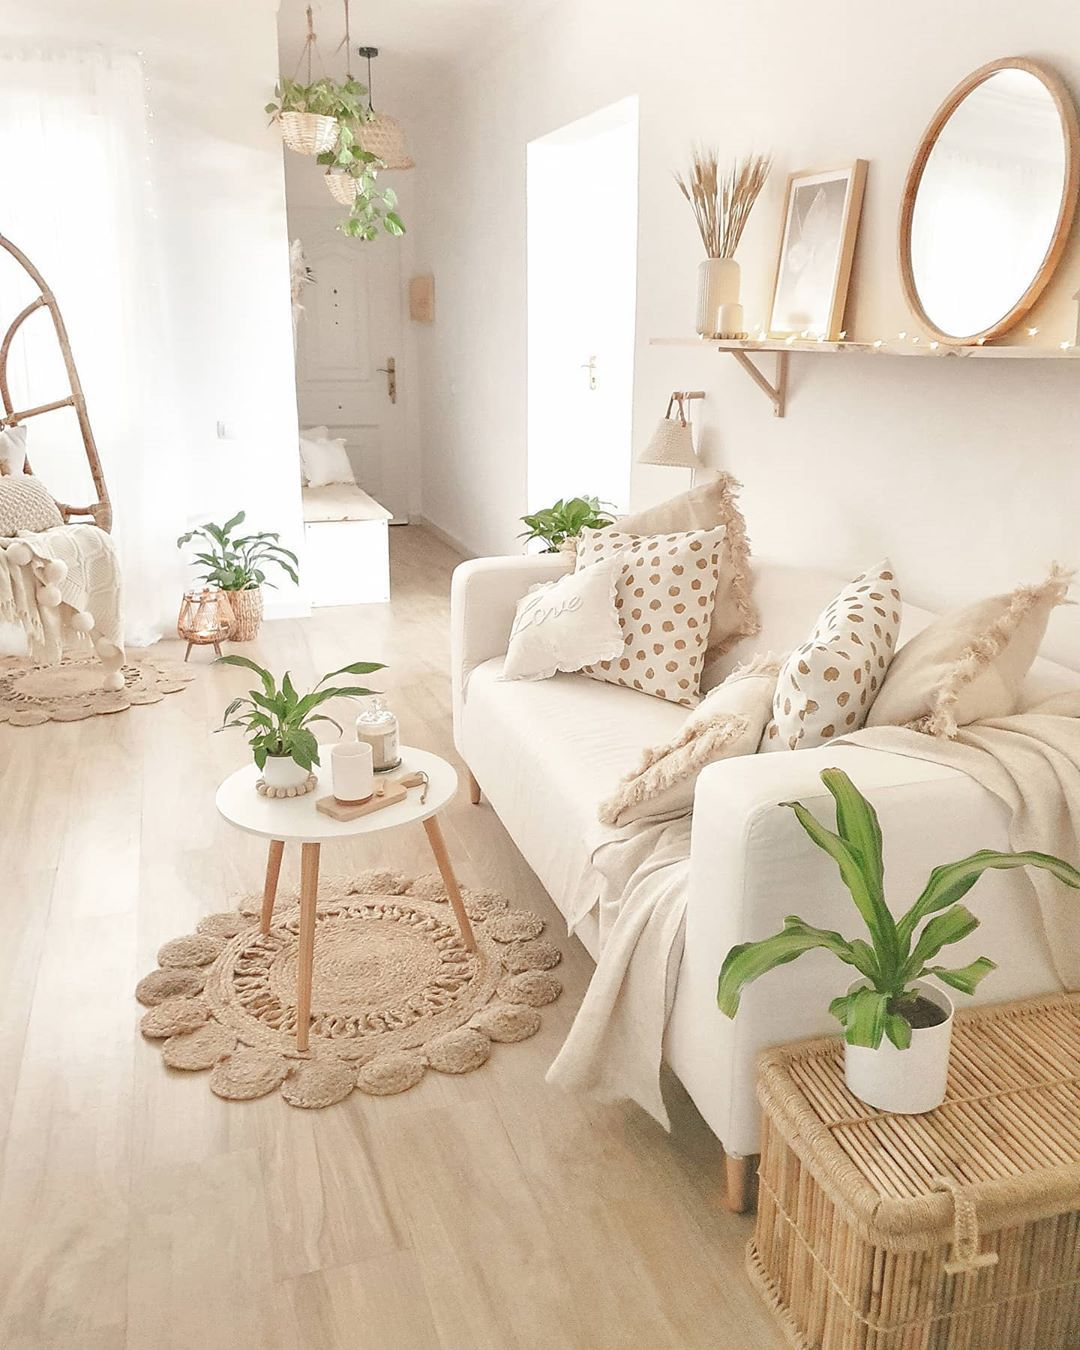 Bright white with plants! Love this living room by @sandradeco__sweet_home 💕💕💕. Click the image to try our free home design app.  (Keywords: living room decor, living room ideas, living room designs, dream rooms, house design, home decor ideas, living room rugs, living room furniture, positive vibes, positive thoughts, boho living room)